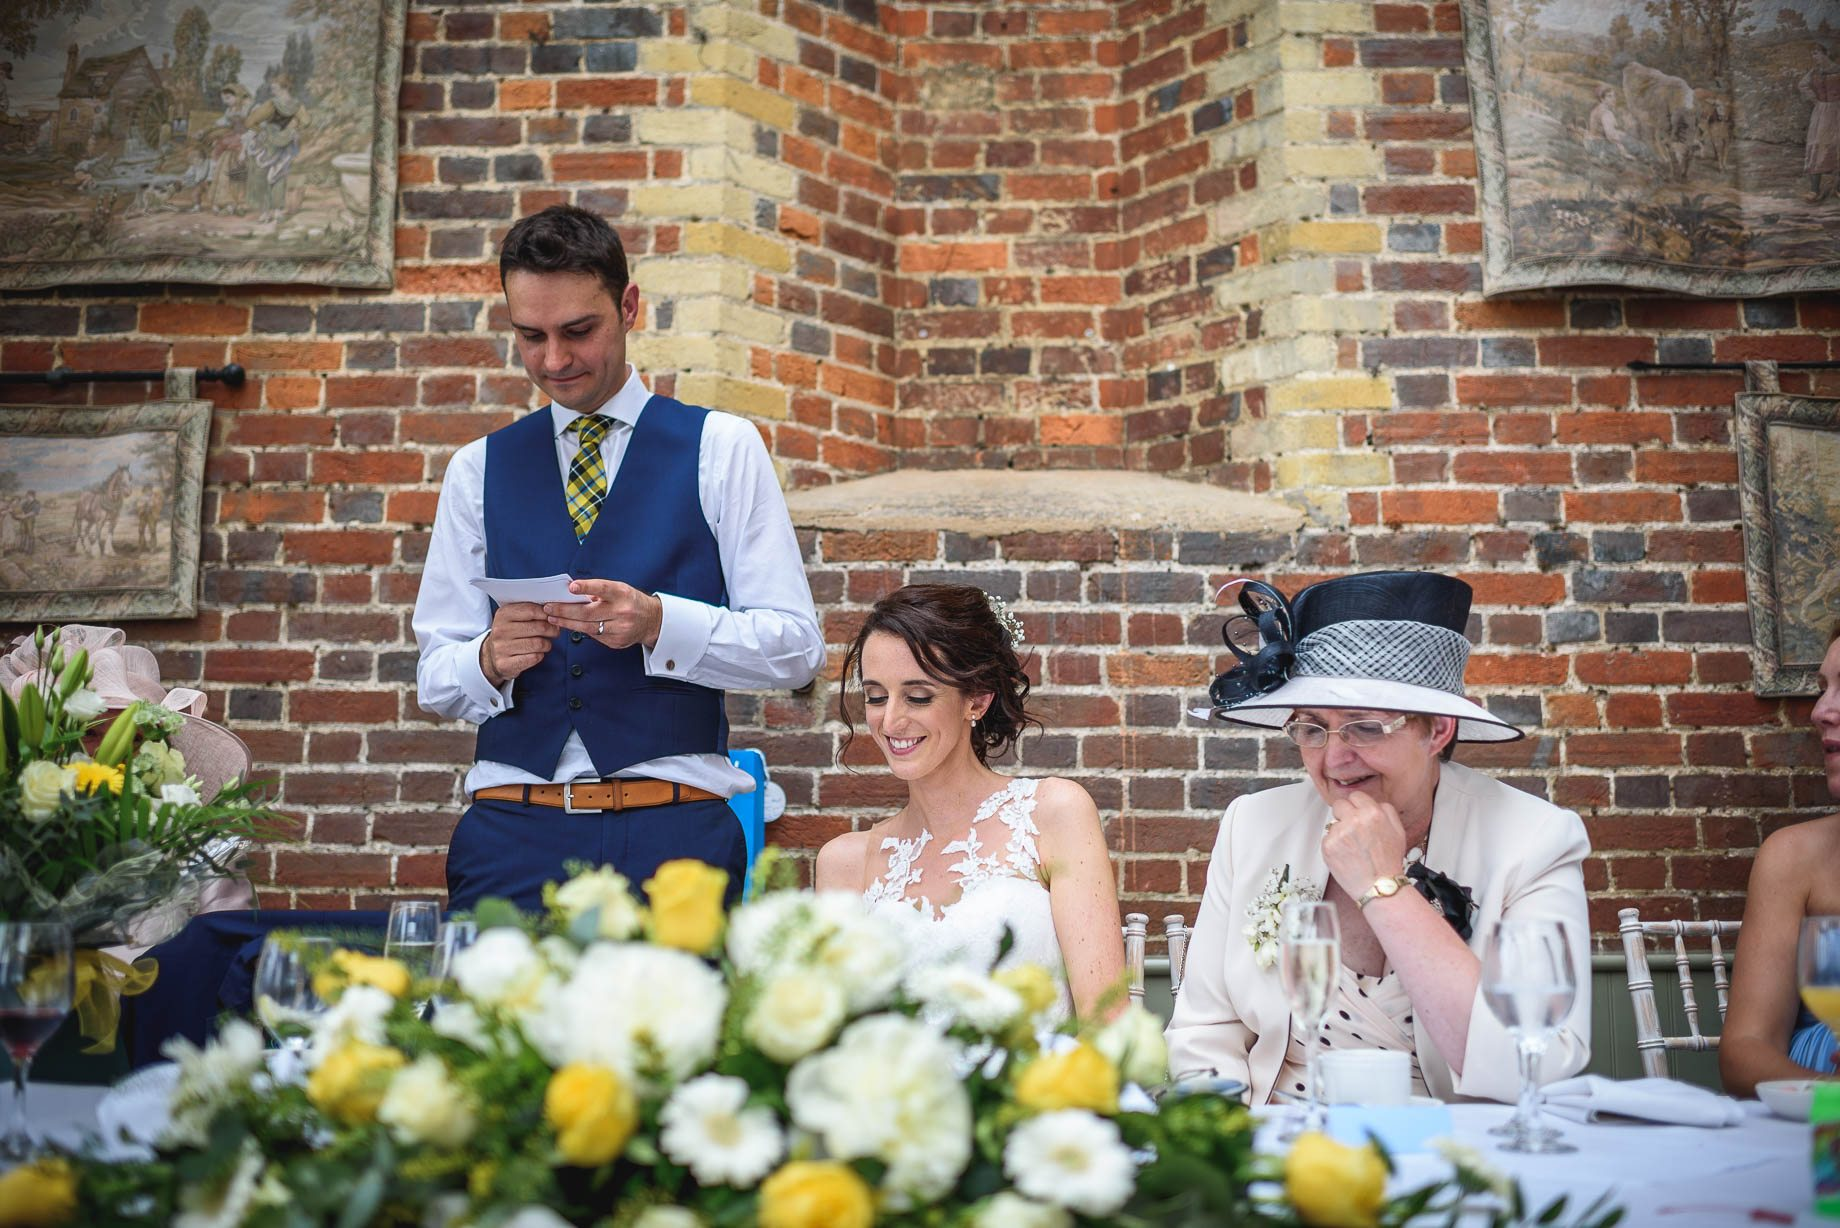 Hertfordshire wedding photography - Sarah and Stephen by Guy Collier Photography (127 of 161)